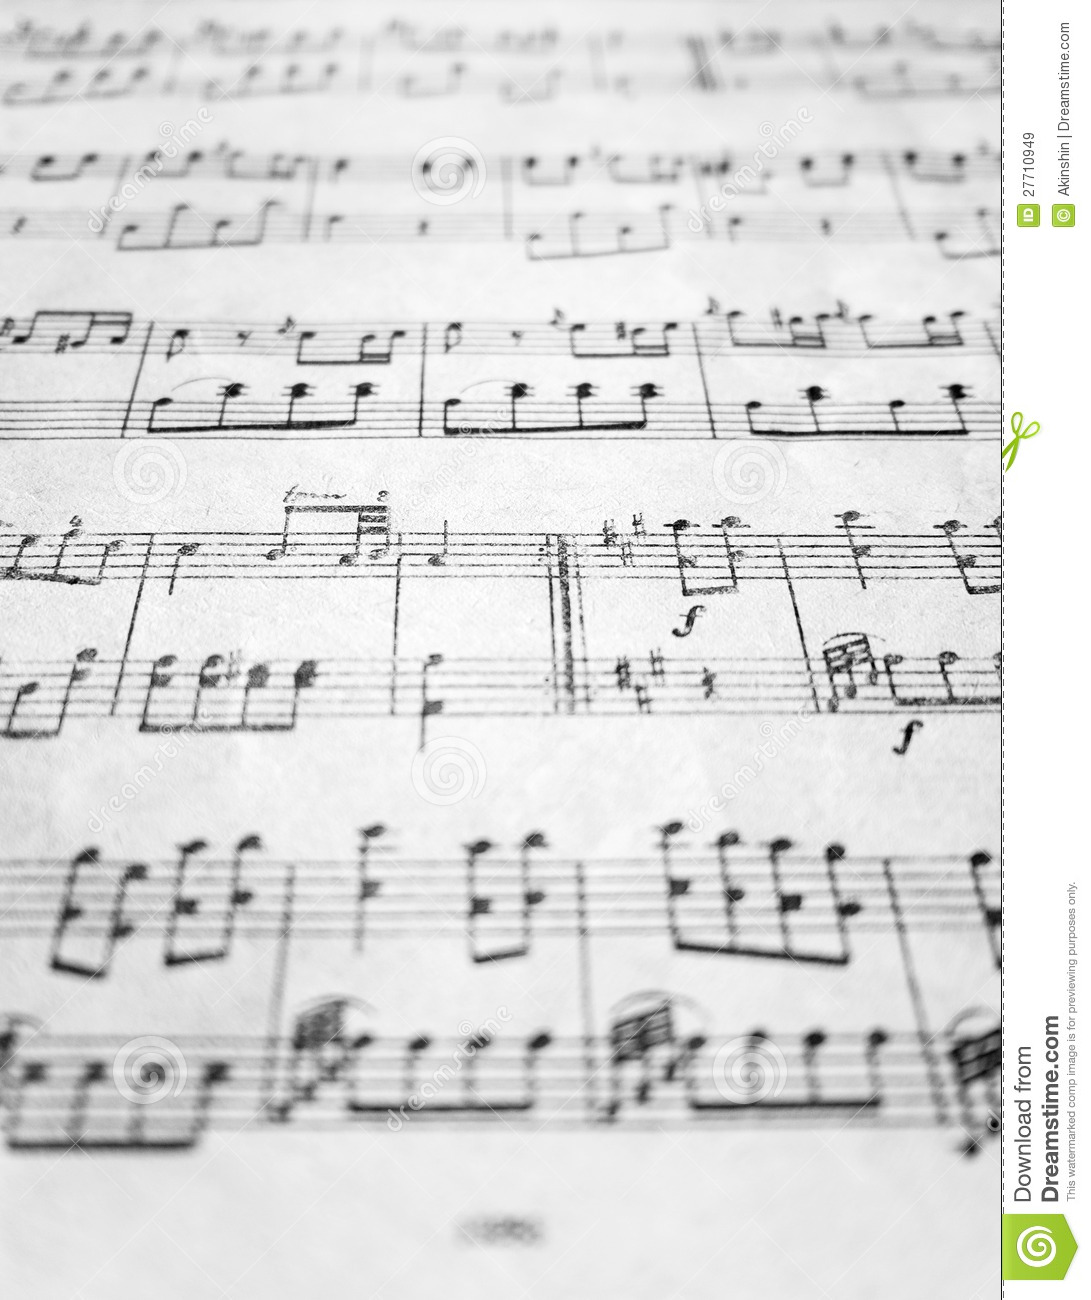 Full Theme Sheet Music Theoffice Us: Old Sheet Music Royalty Free Stock Images